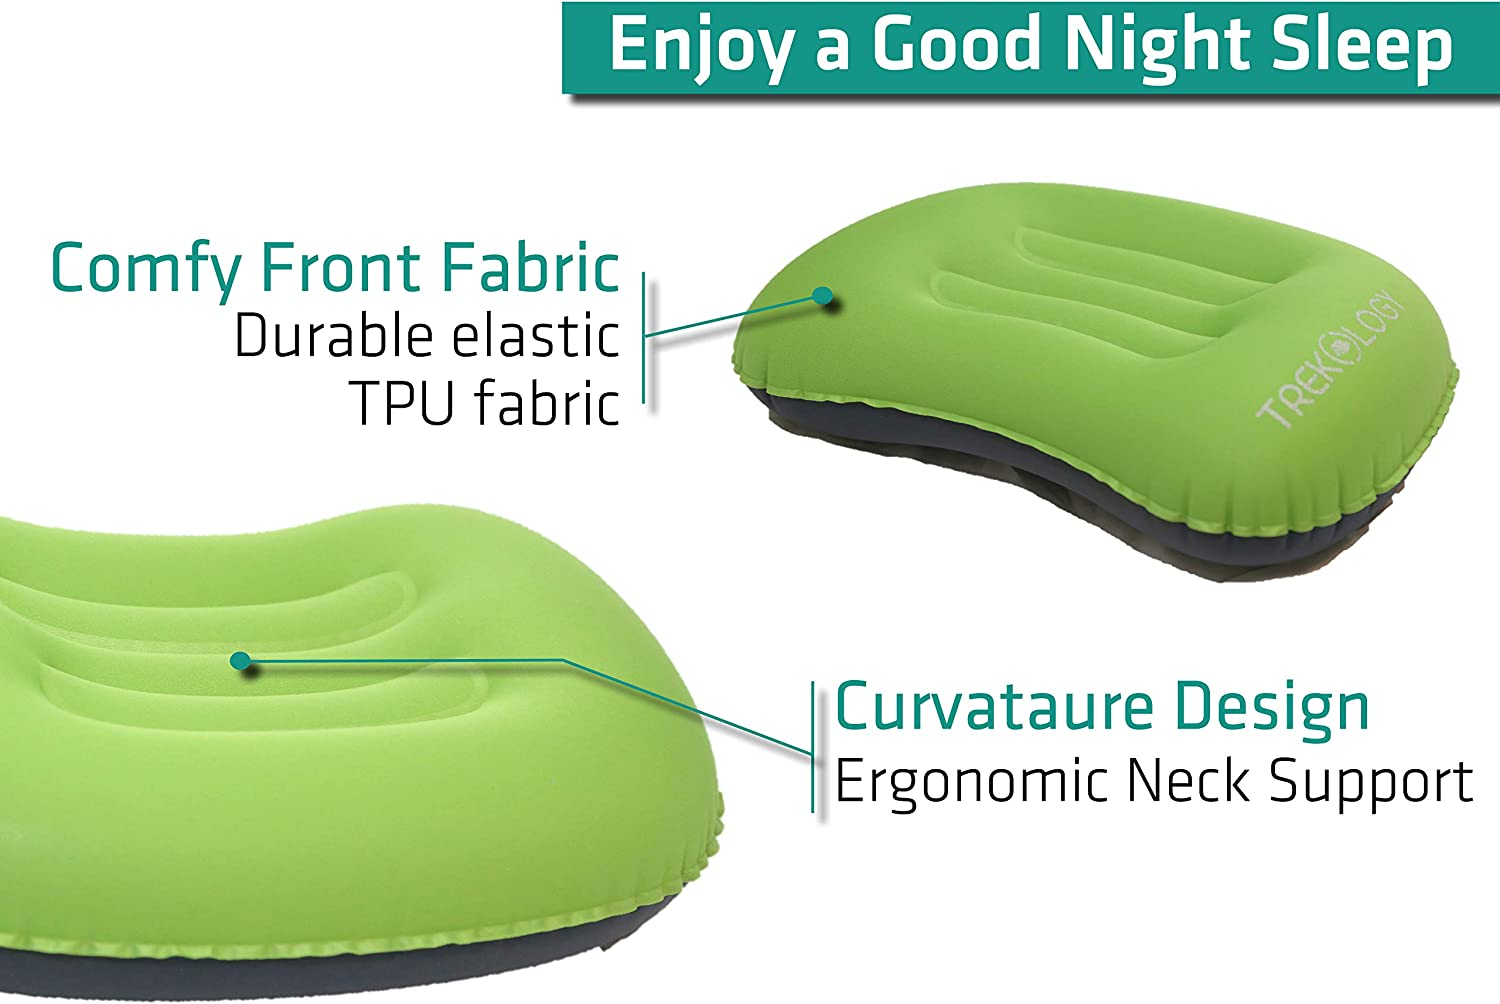 Comfortable Aluft 1.0 Compressible Backpacking Compact Ergonomic Pillow for Neck /& Lumbar Support While Camp Inflatable TREKOLOGY Ultralight Inflating Travel//Camping Pillows Hike